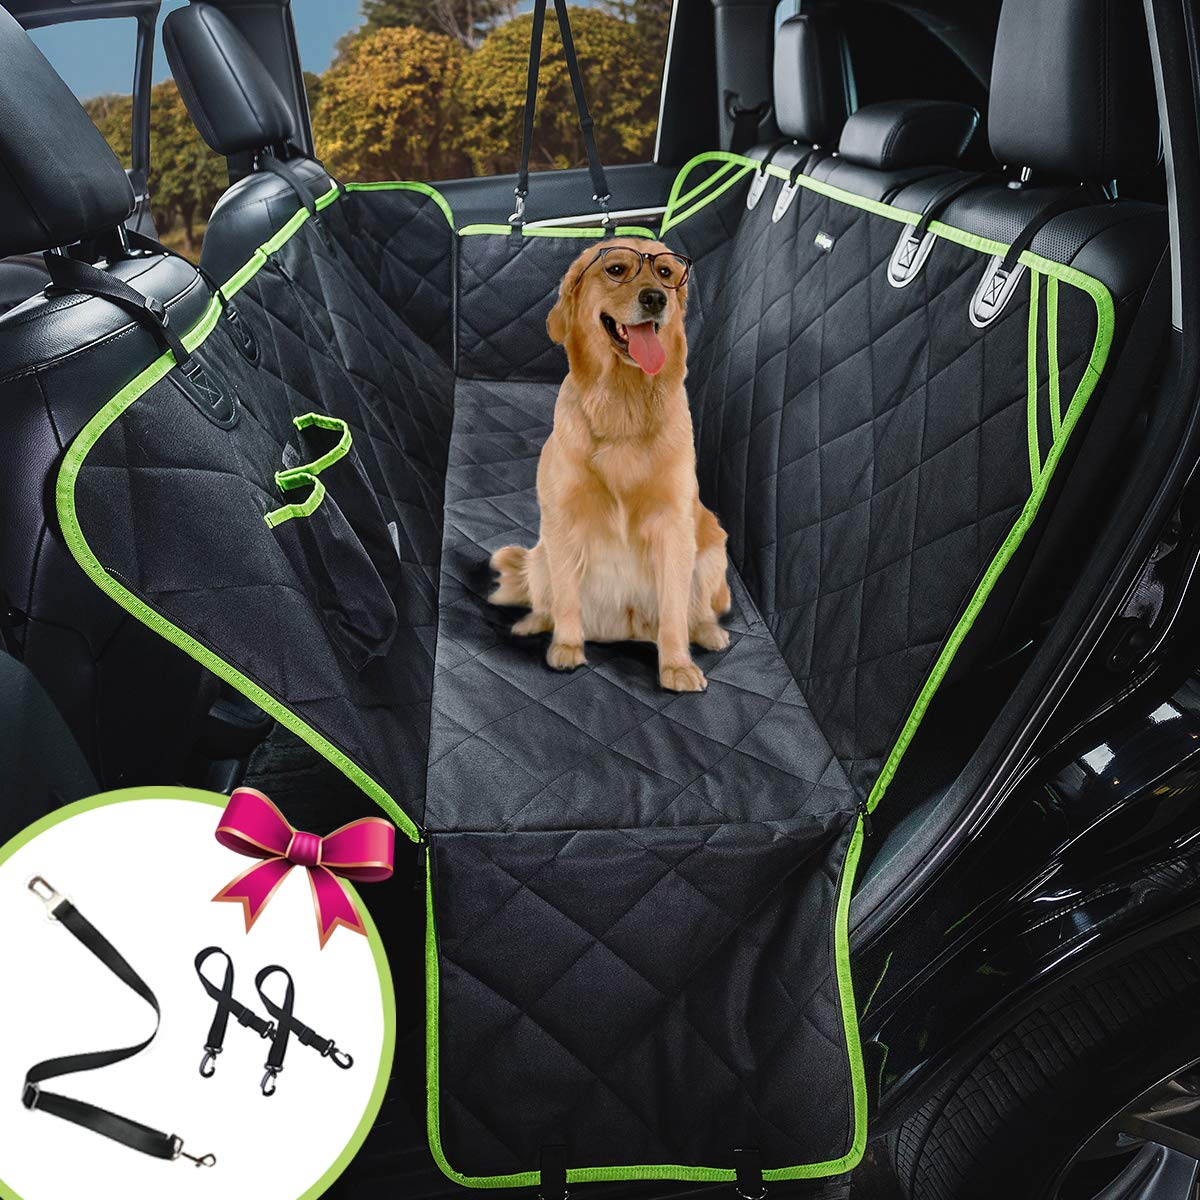 petalage Dog Seat Cover for Back Seat Waterproof Scratch Proof Nonslip Car Seat for Dogs Back Seat Cover for Cars Trucks SUV HYSC1